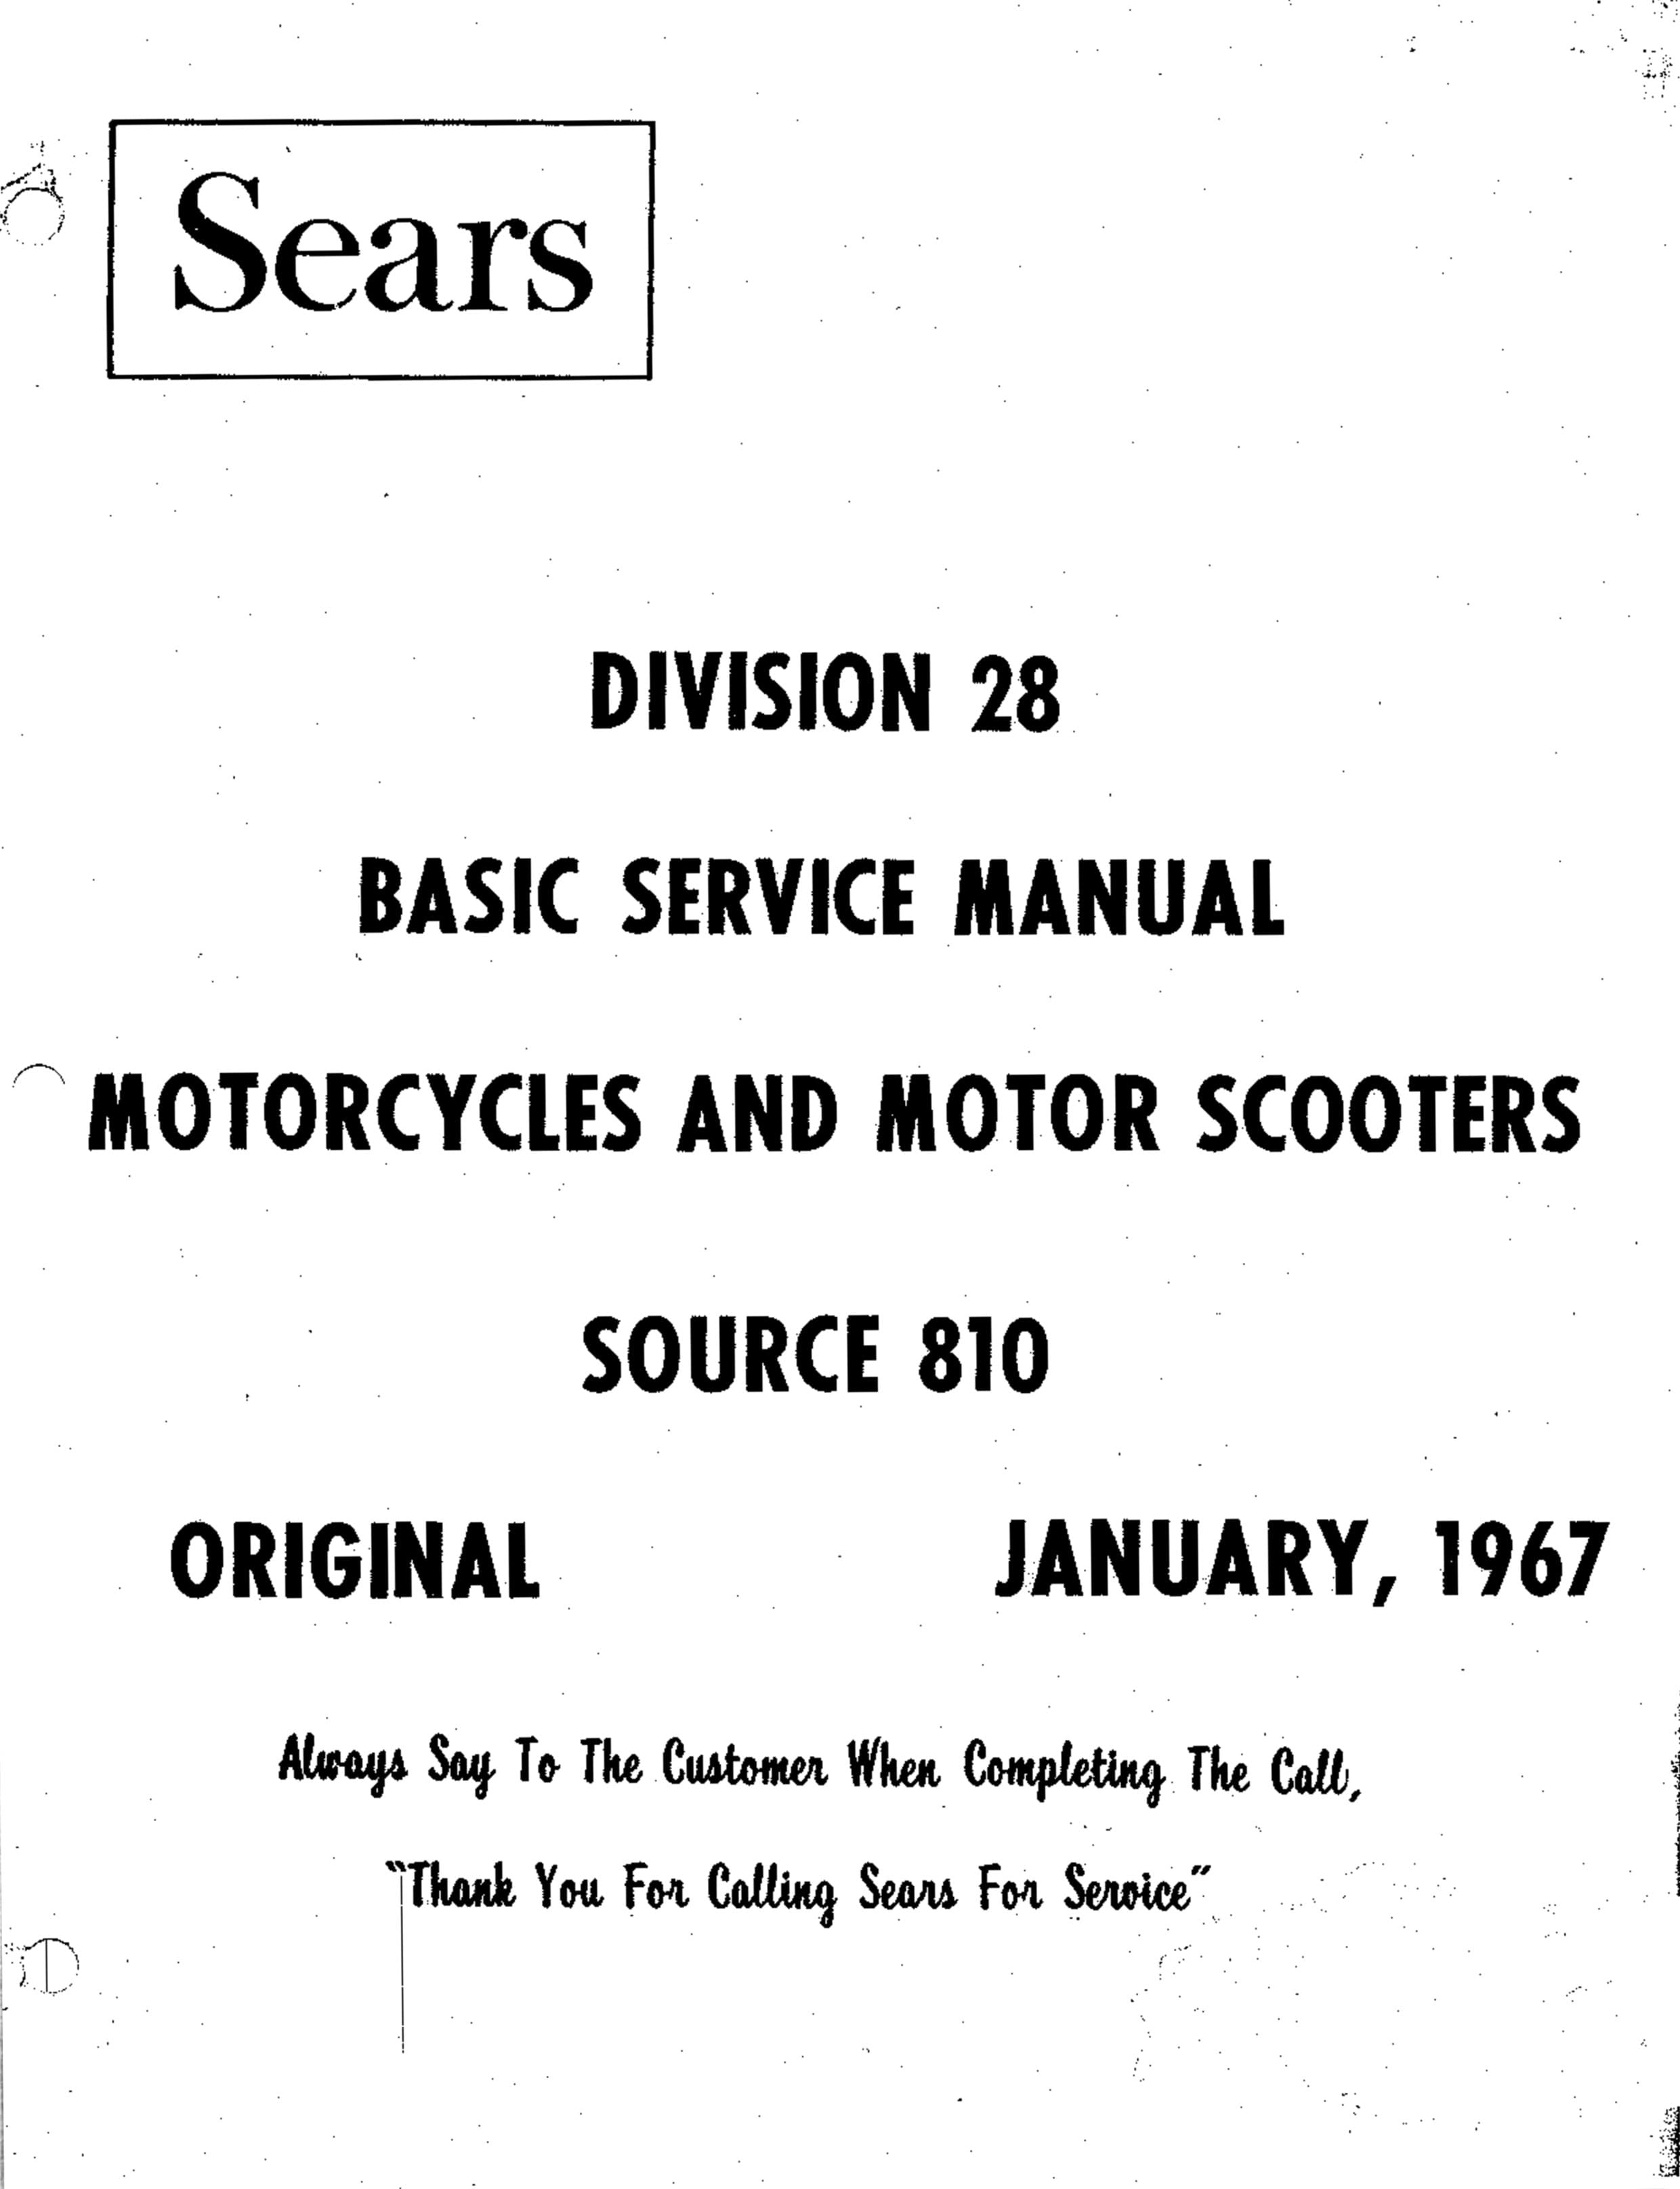 Puch Division 28 January 1967 Basic Service Manual